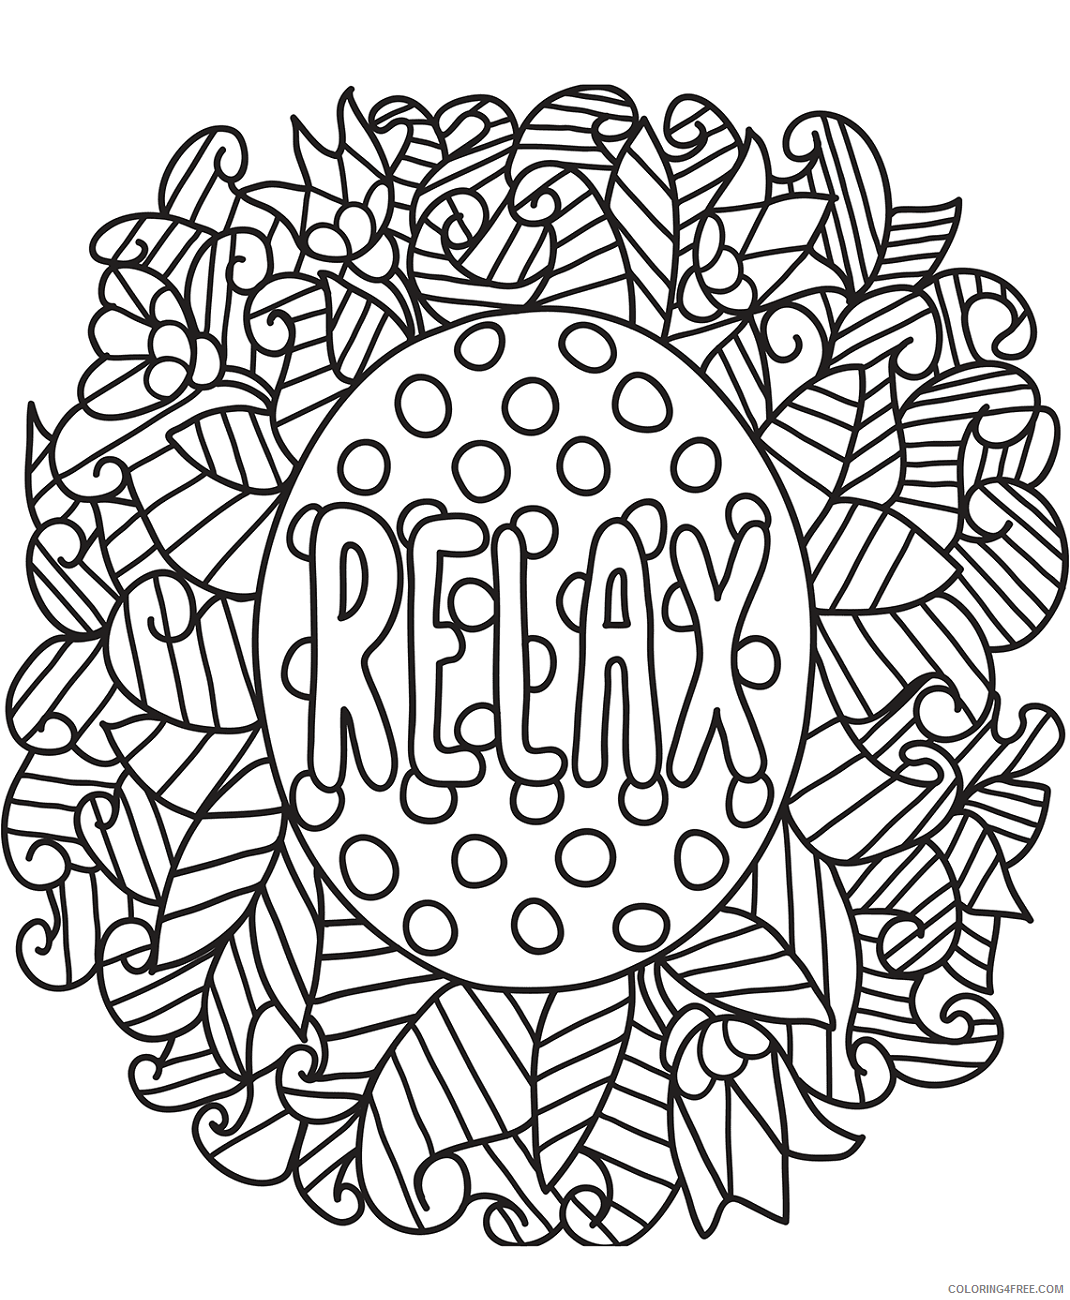 Doodle Coloring Pages Adult relax_doodle a4 Printable 2020 319 Coloring4free